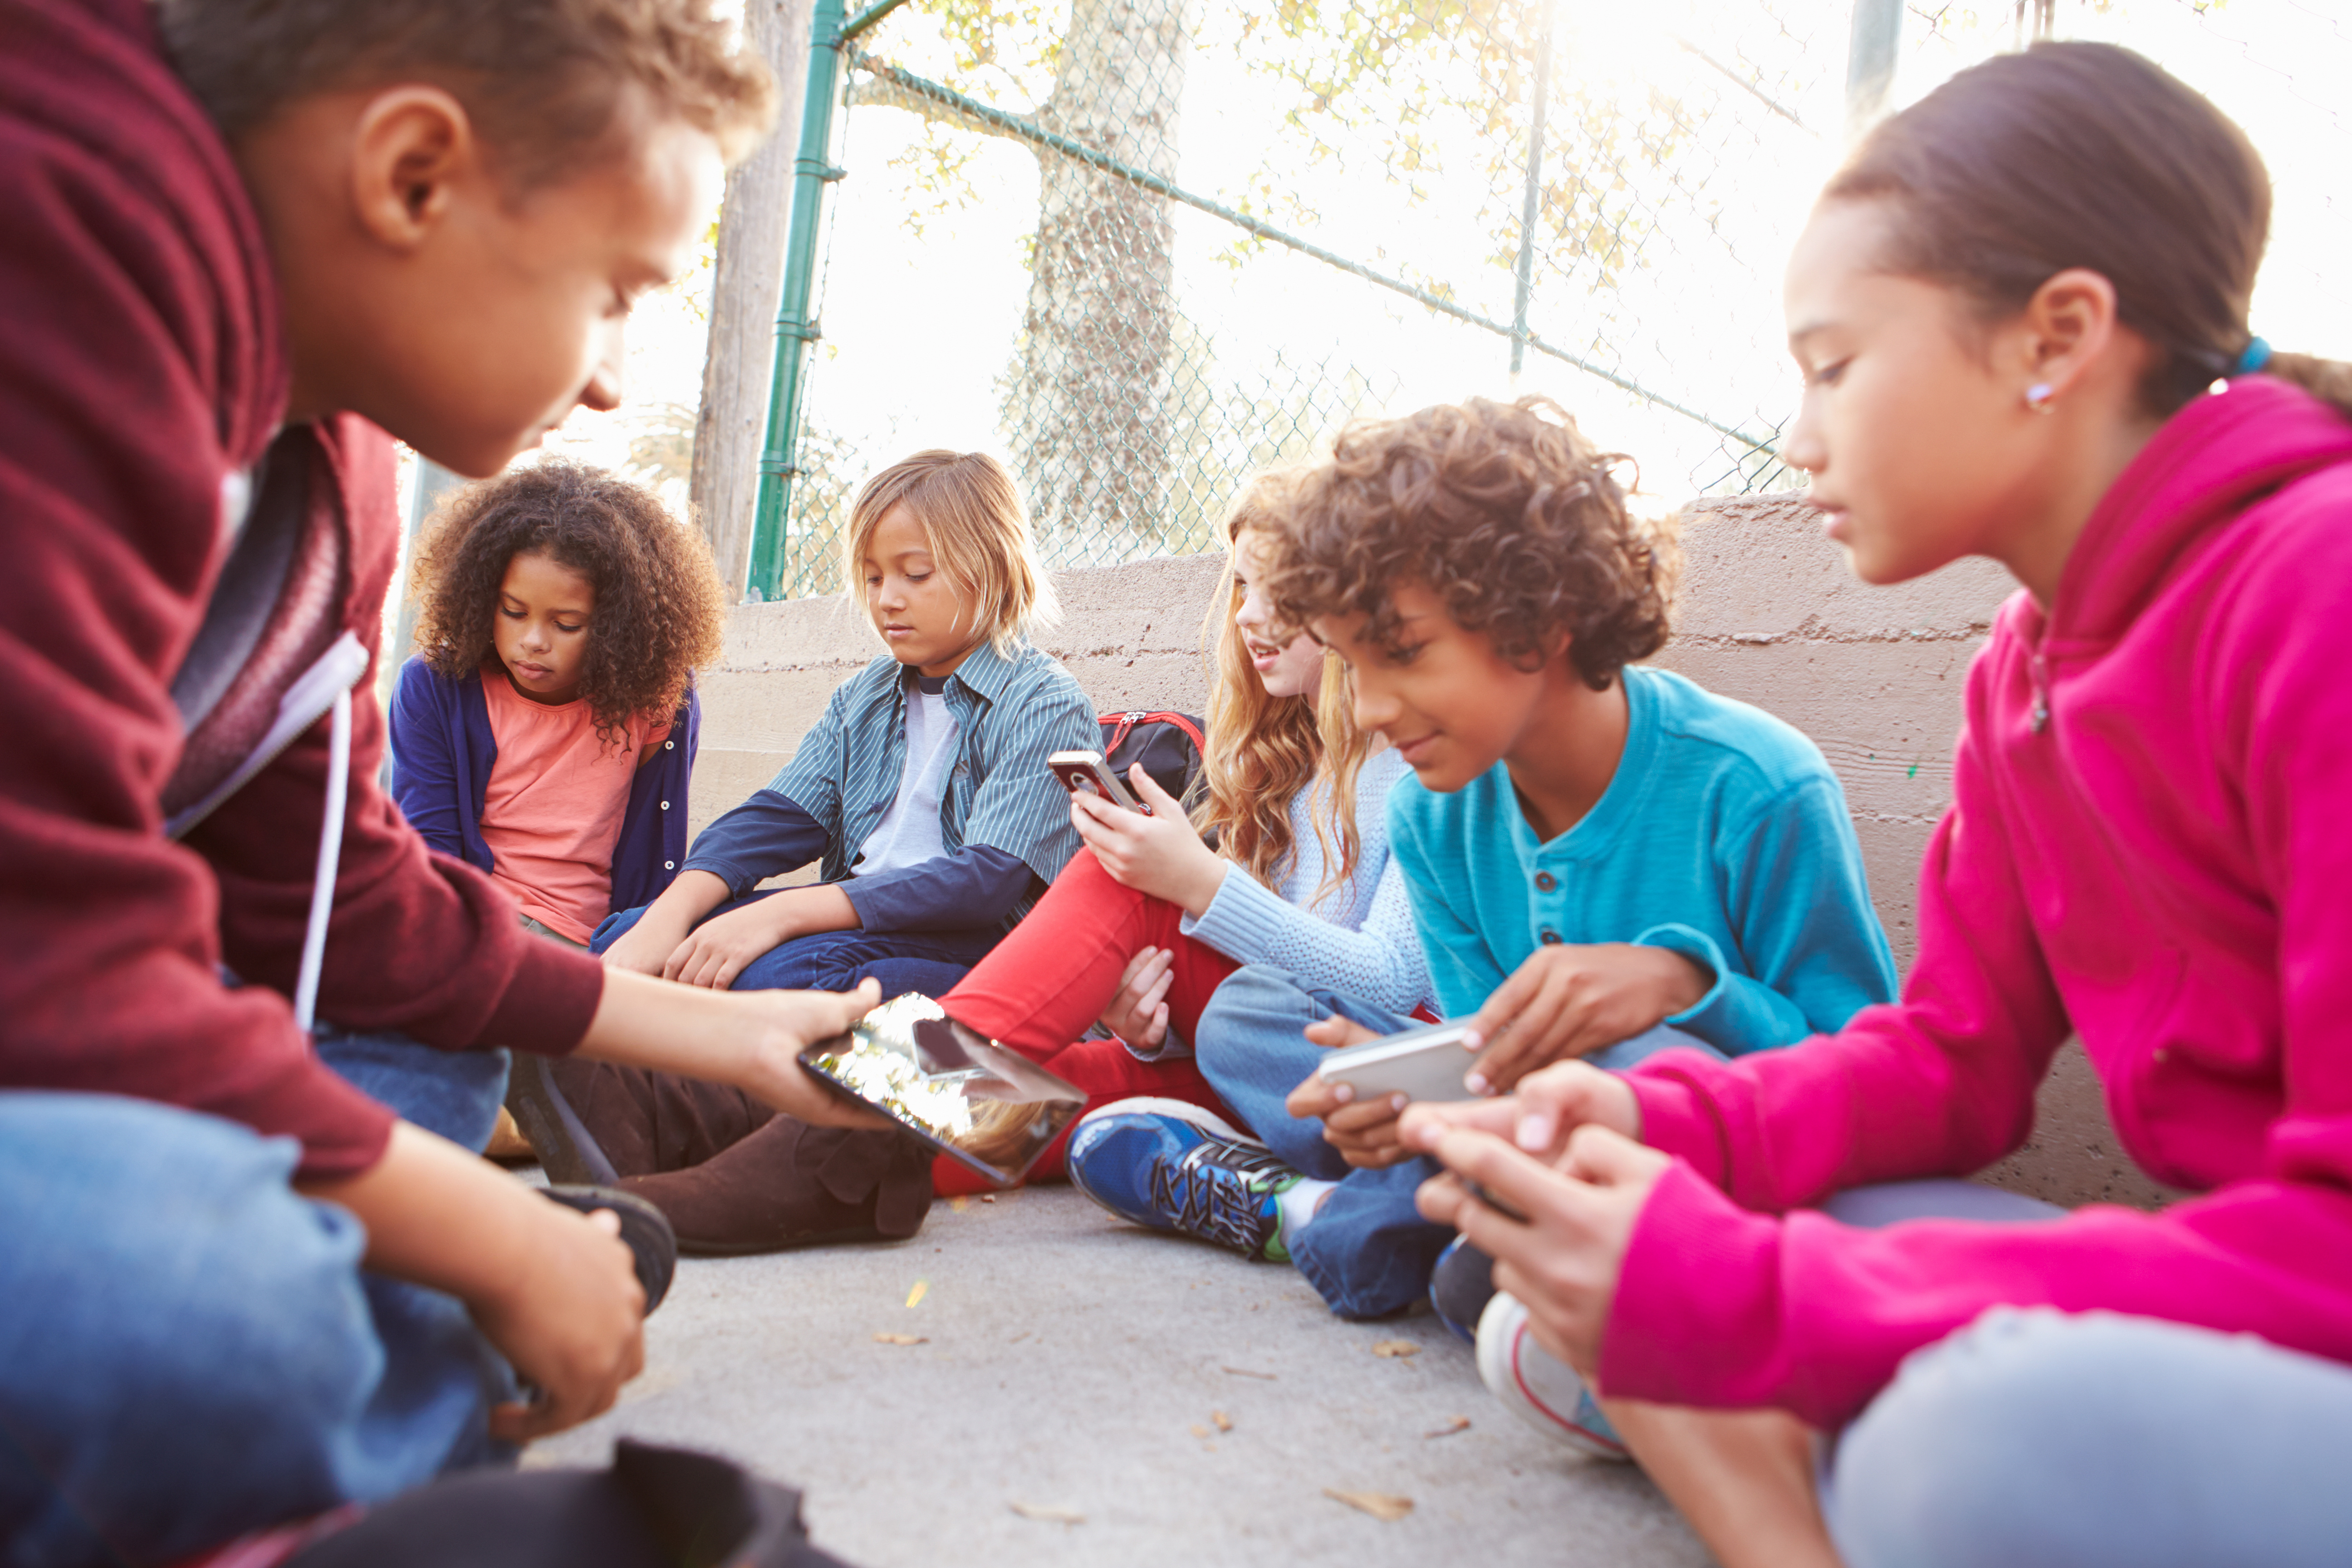 usage of phones by children Watch video parents use apps to track child's cell phone, social media added so you can monitor your children's of kids have cell phones and parents need all the.